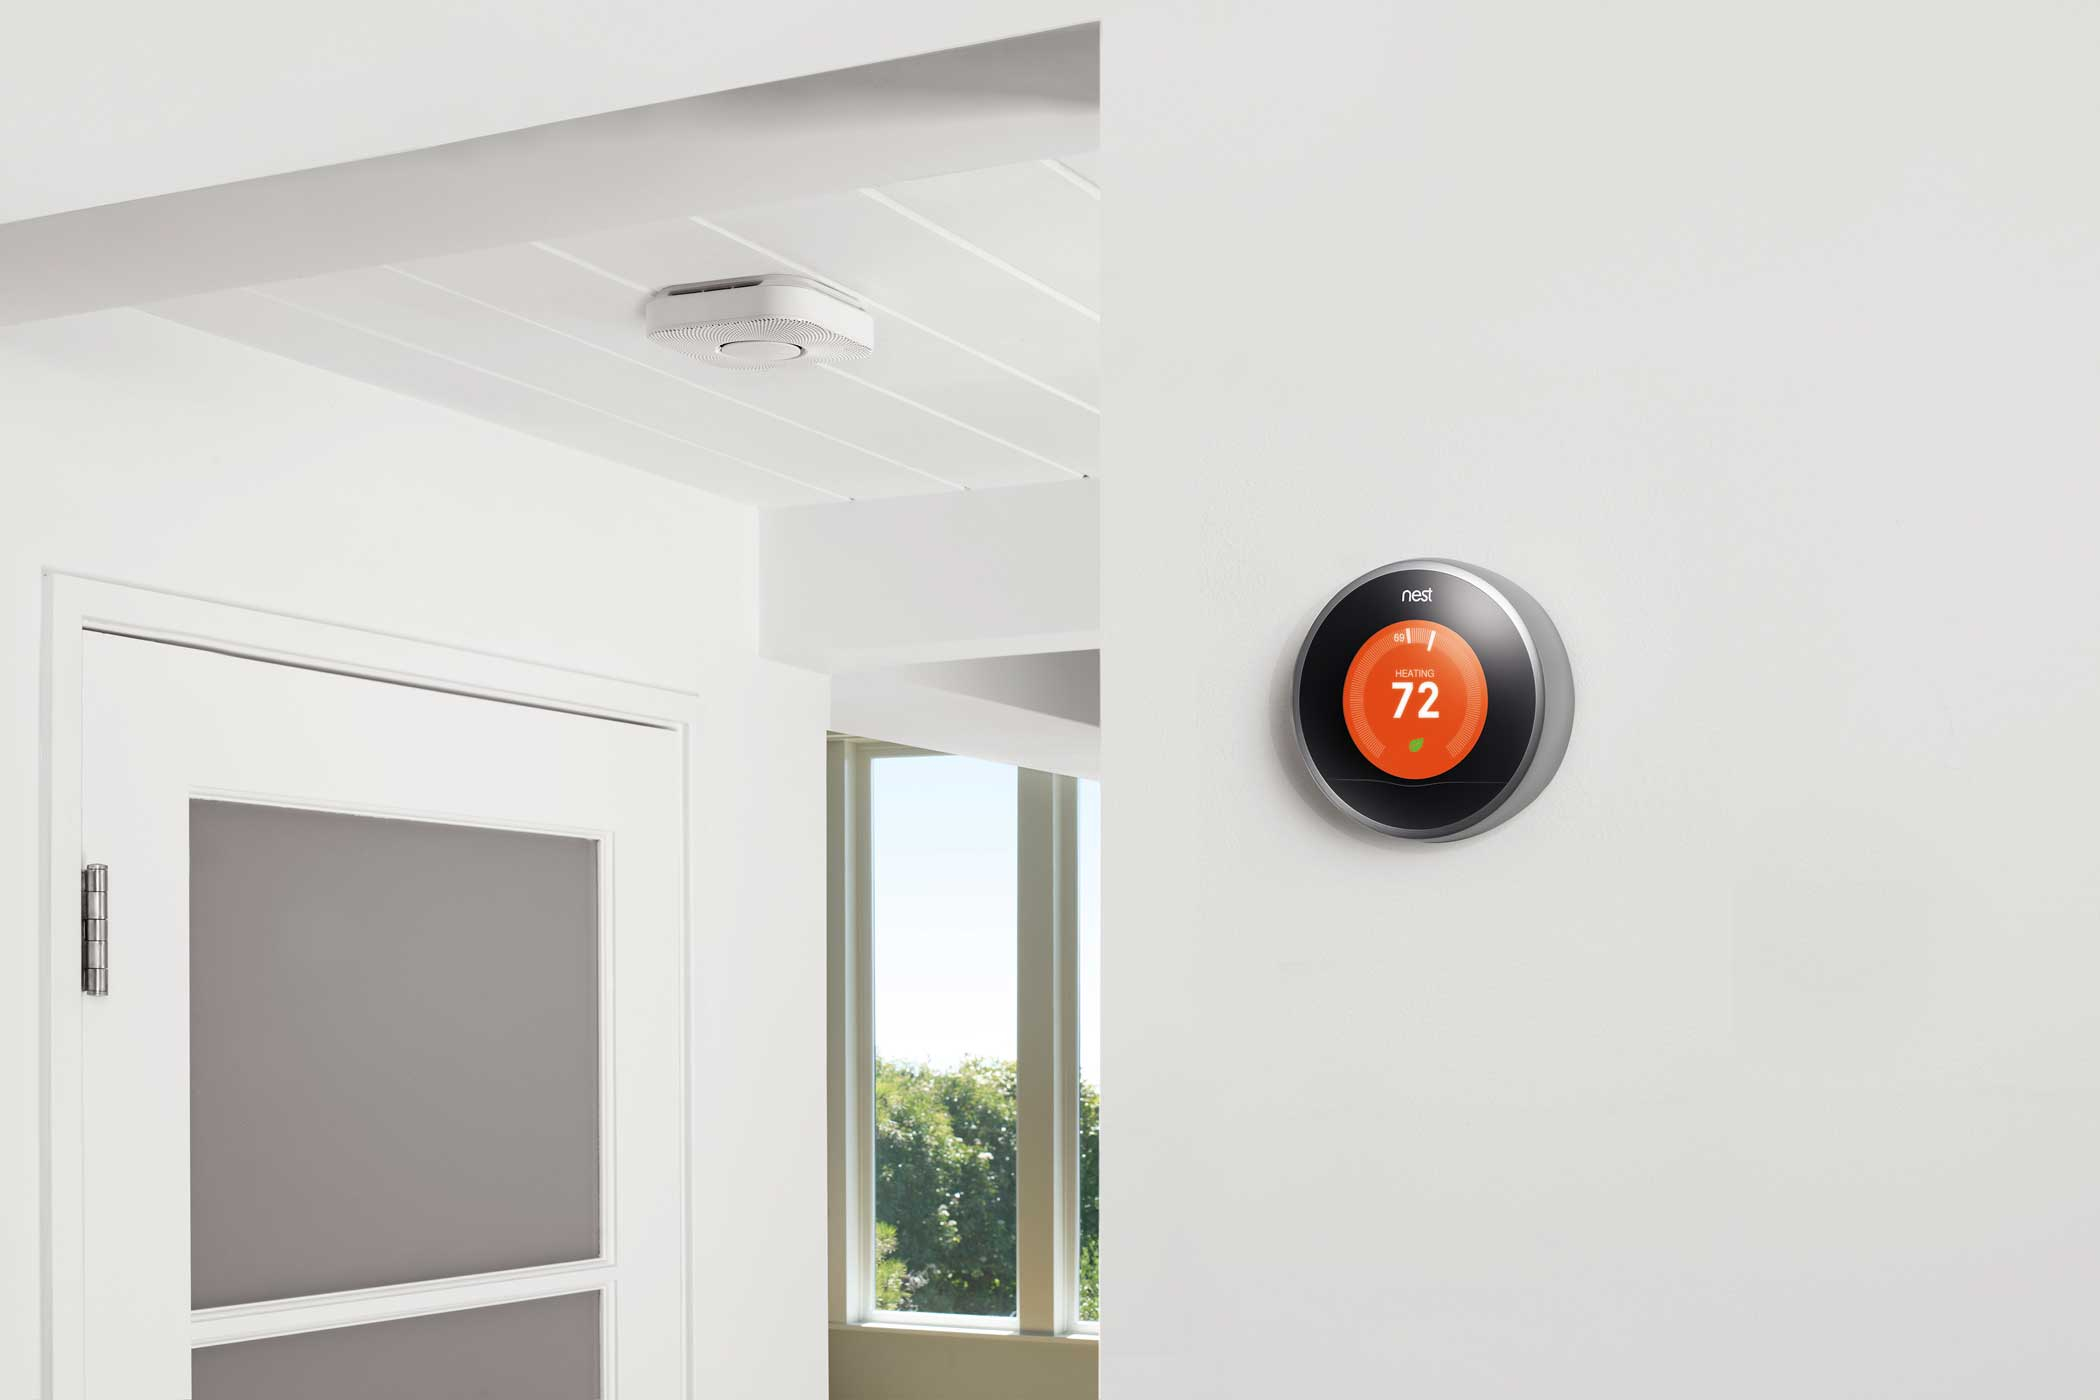 Nest: The smart thermostat company that Google bought for $3.2 billion in 2014 is the centerpiece in Google's plan to control the smart homes of the future.